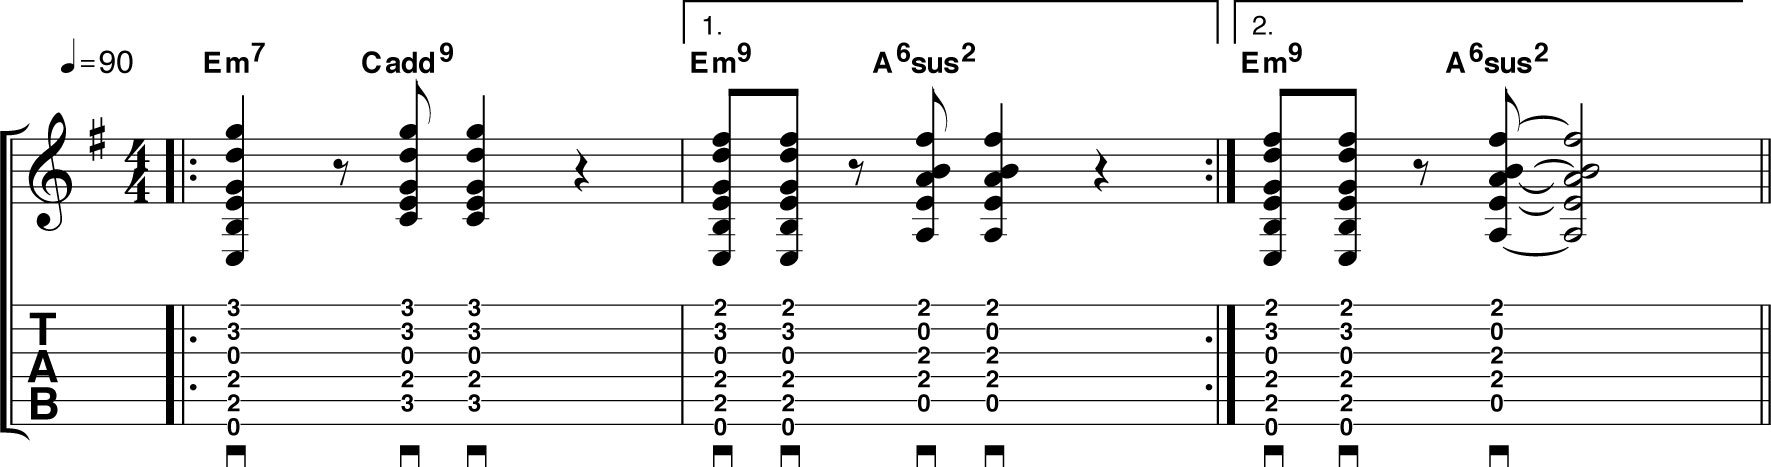 Em9 chord guitar images guitar chords examples em9 chord guitar image collections guitar chords examples guitar chord em9 30 chords acoustic guitar players hexwebz Image collections